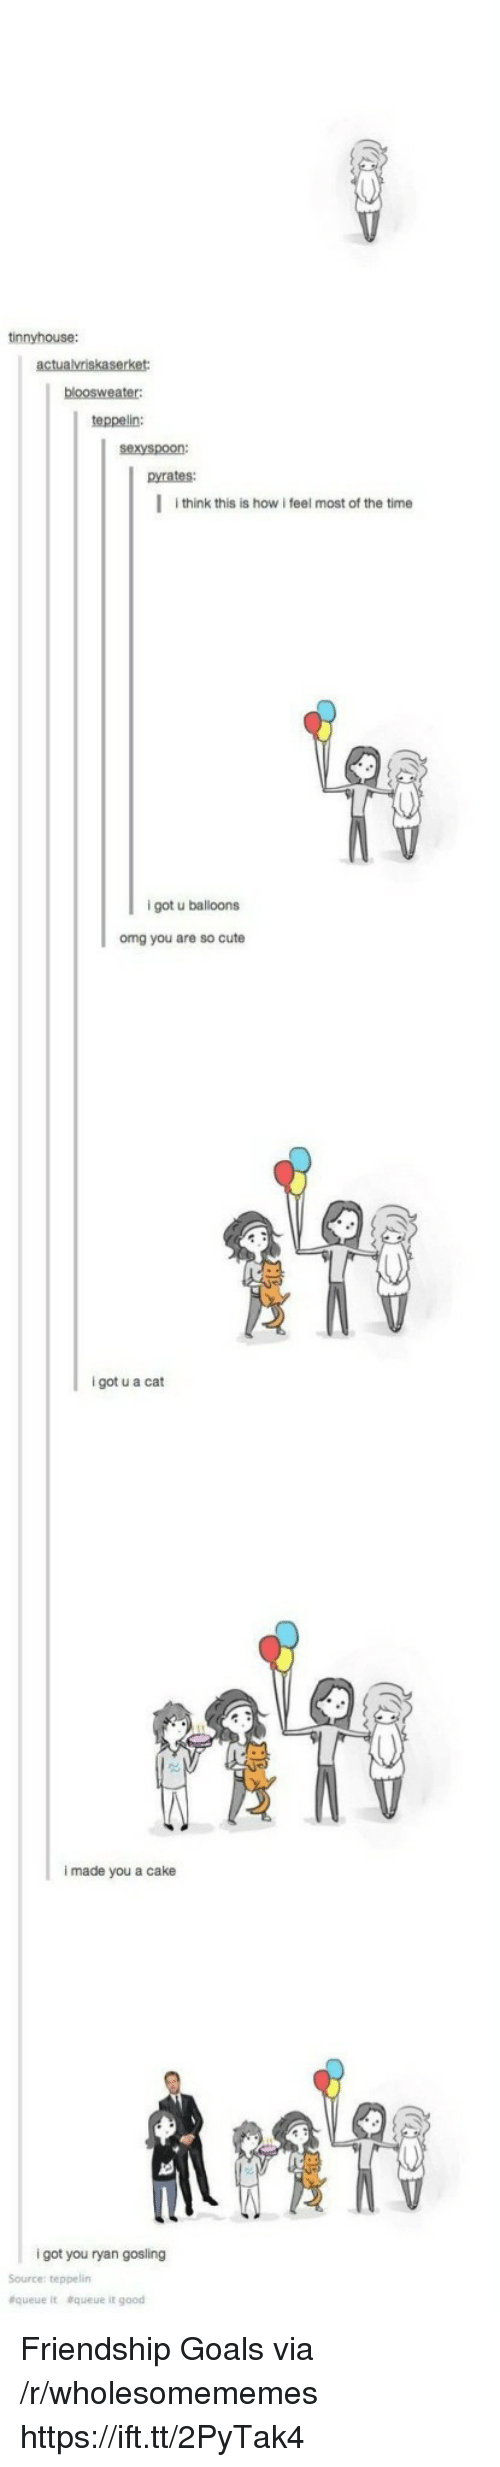 Friendship Goals: tinnyhouse:  teppelin:  sexyspoon:  pyrates:  I think this is how i feel most of the time  9  igot u balloons  omg you are so cute  i got u a cat  i made you a cake  i got you ryan gosling  Source: teppelin  &queue  &queue it good Friendship Goals via /r/wholesomememes https://ift.tt/2PyTak4